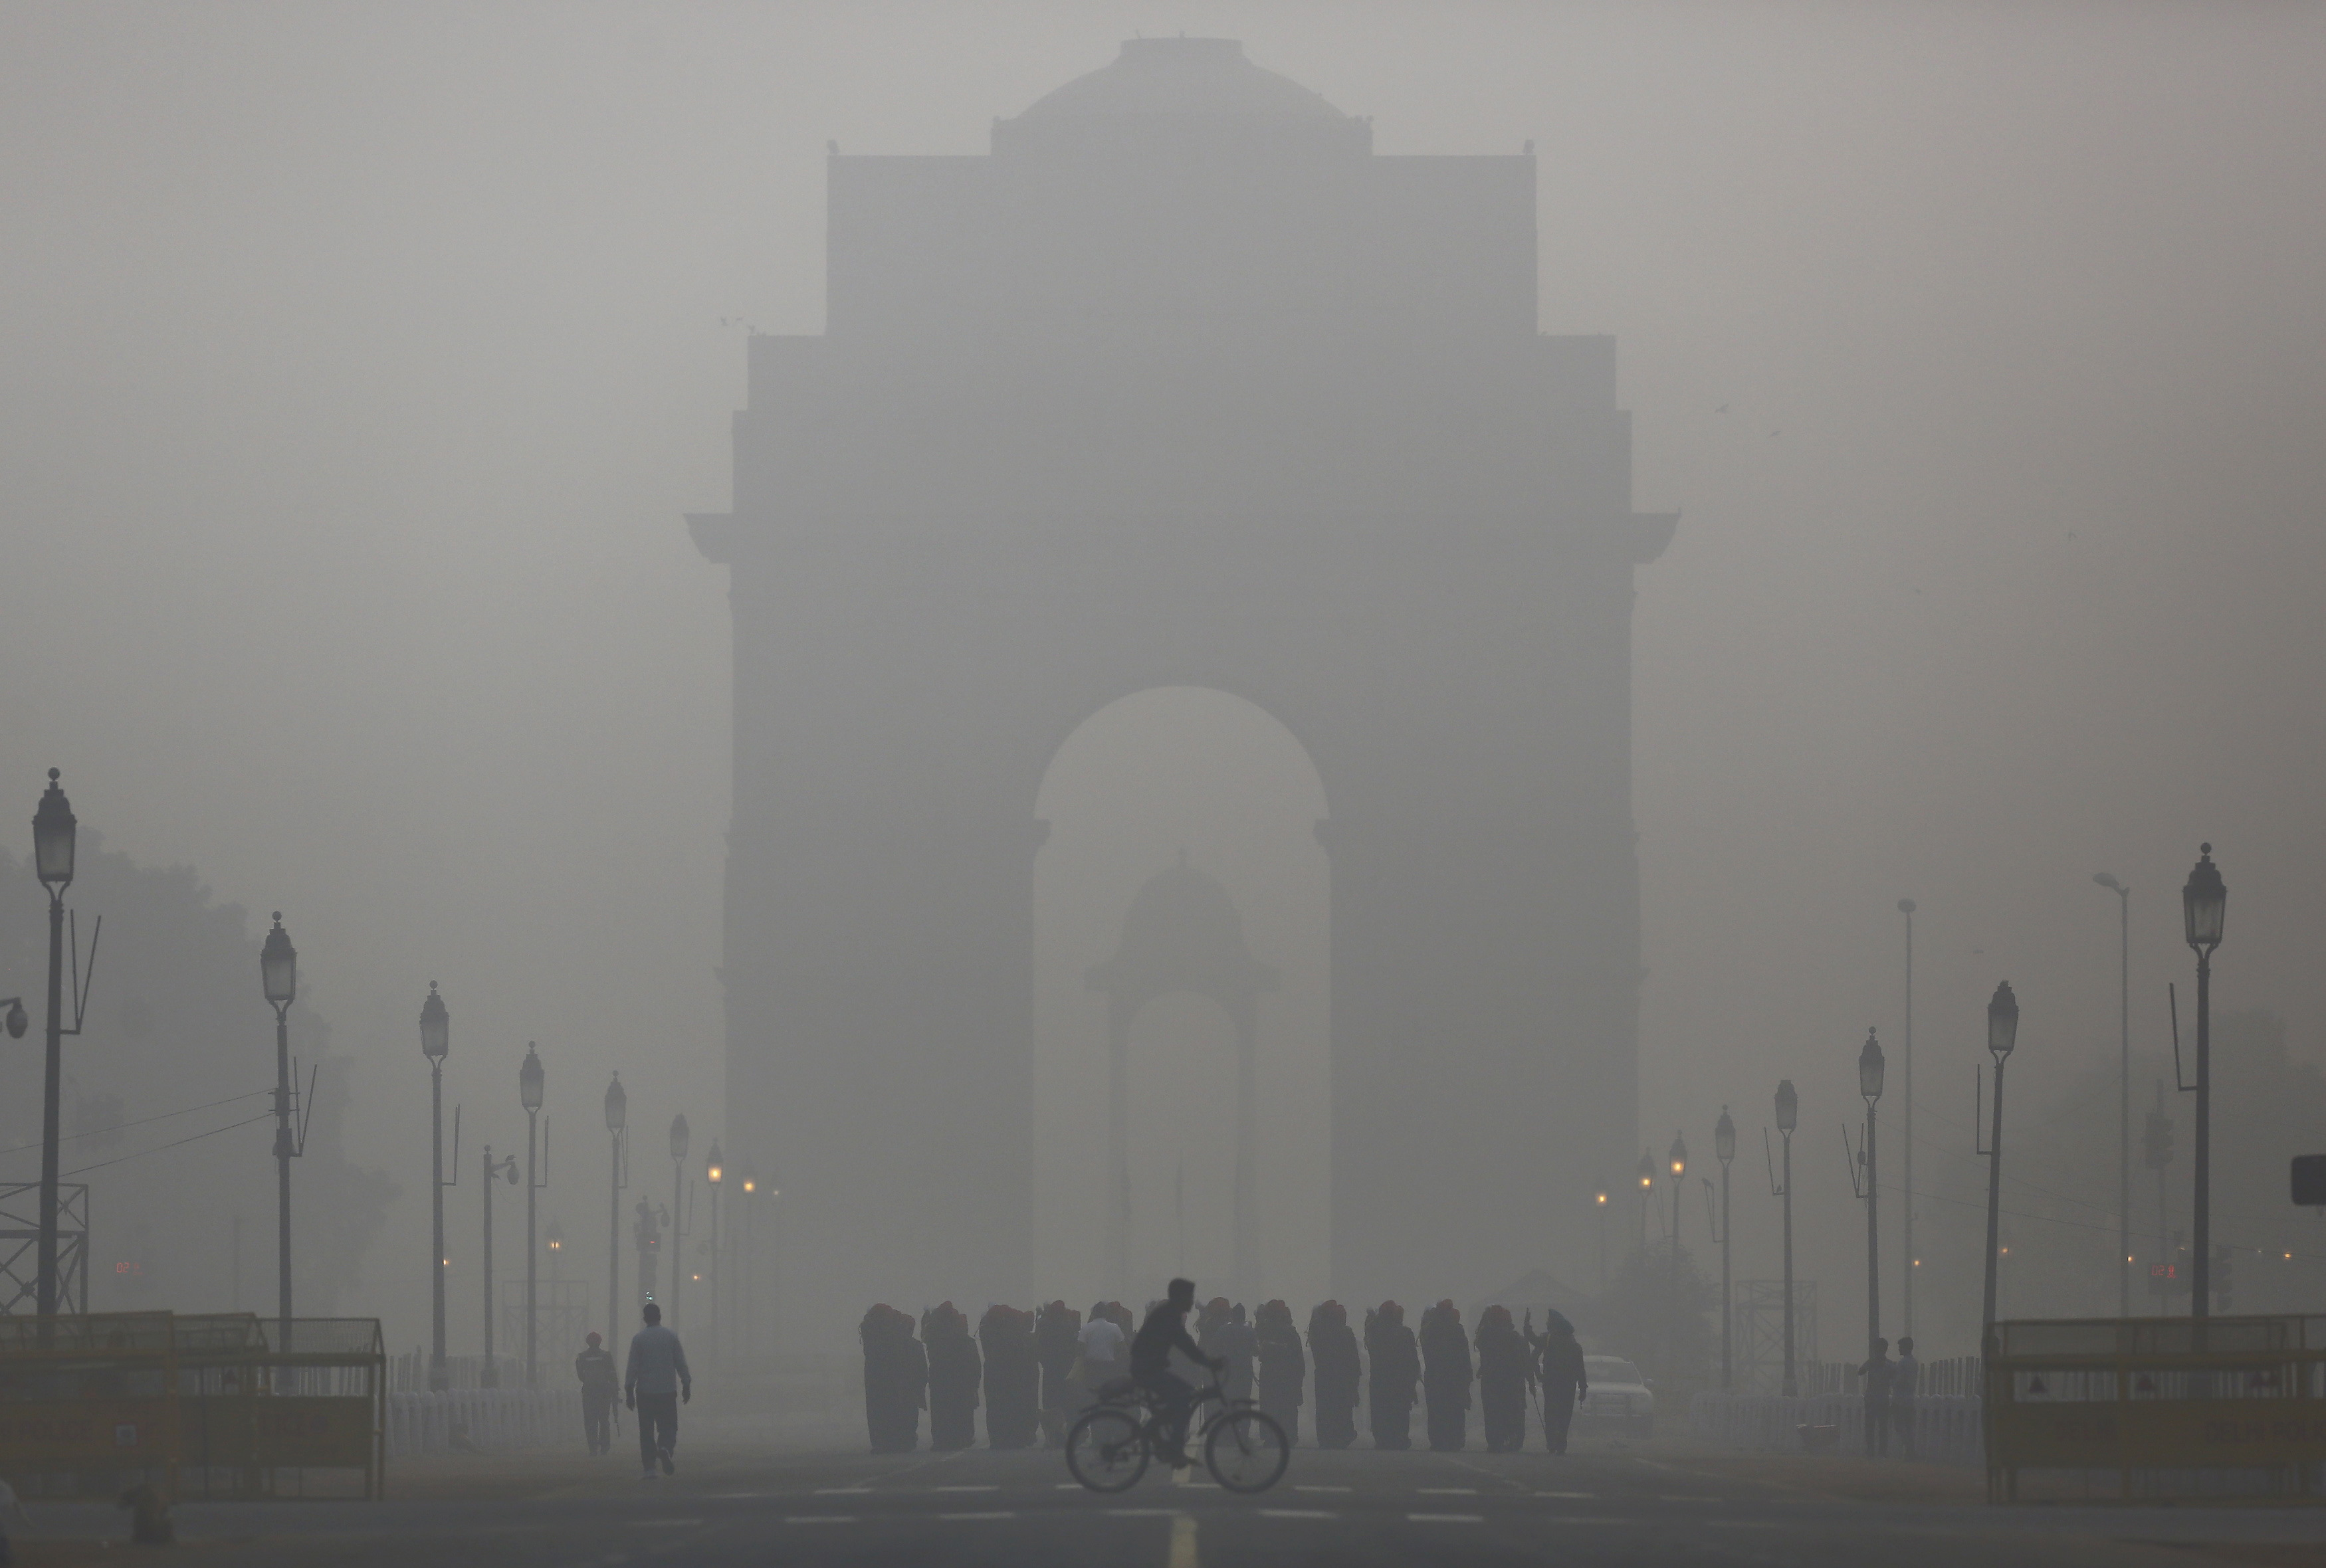 A man rides his bicycle next to Indian soldiers marching in front of India Gate on a smoggy morning in New Delhi, India, December 1, 2015. REUTERS/Anindito Mukherjee      TPX IMAGES OF THE DAY      - RTX1WNKV